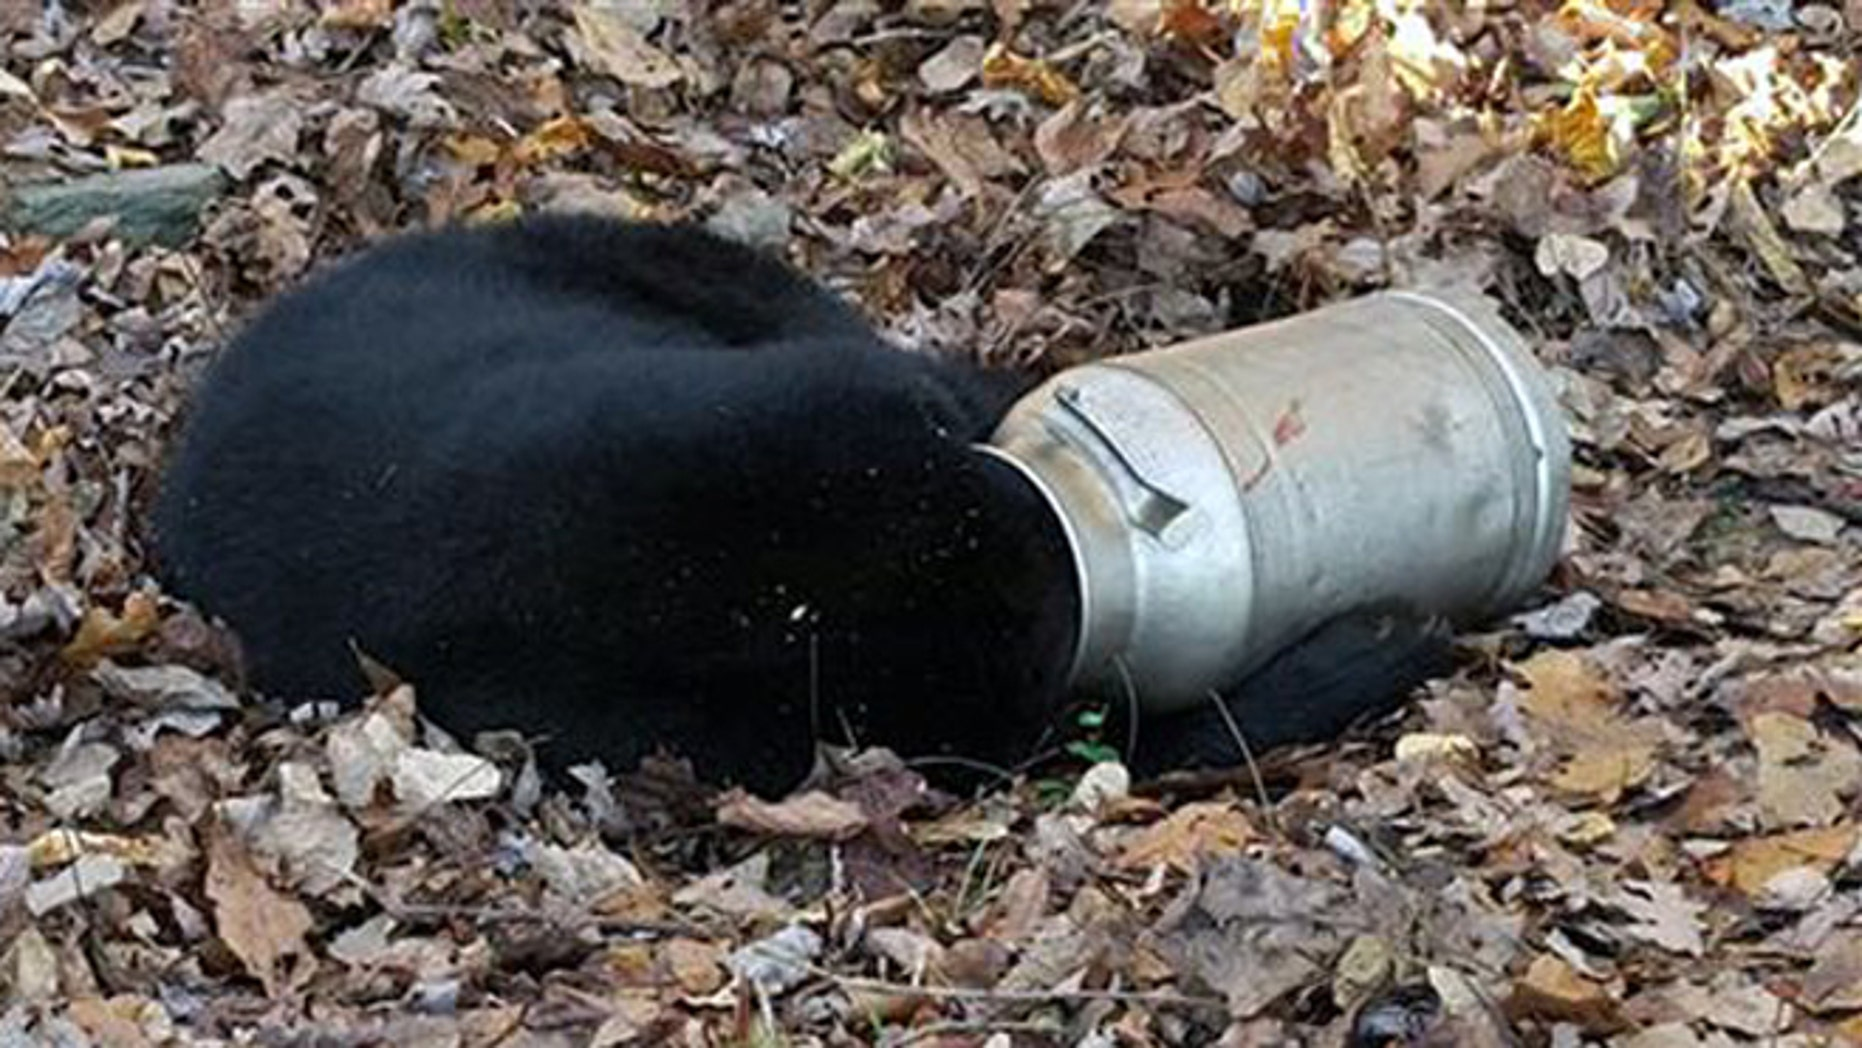 Nov. 16, 2015: In this photo provided by the Maryland Department of Natural Resources Wildlife and Heritage Service, a male black bear rests with its head stuck in a milk can near Thurmont, Md.